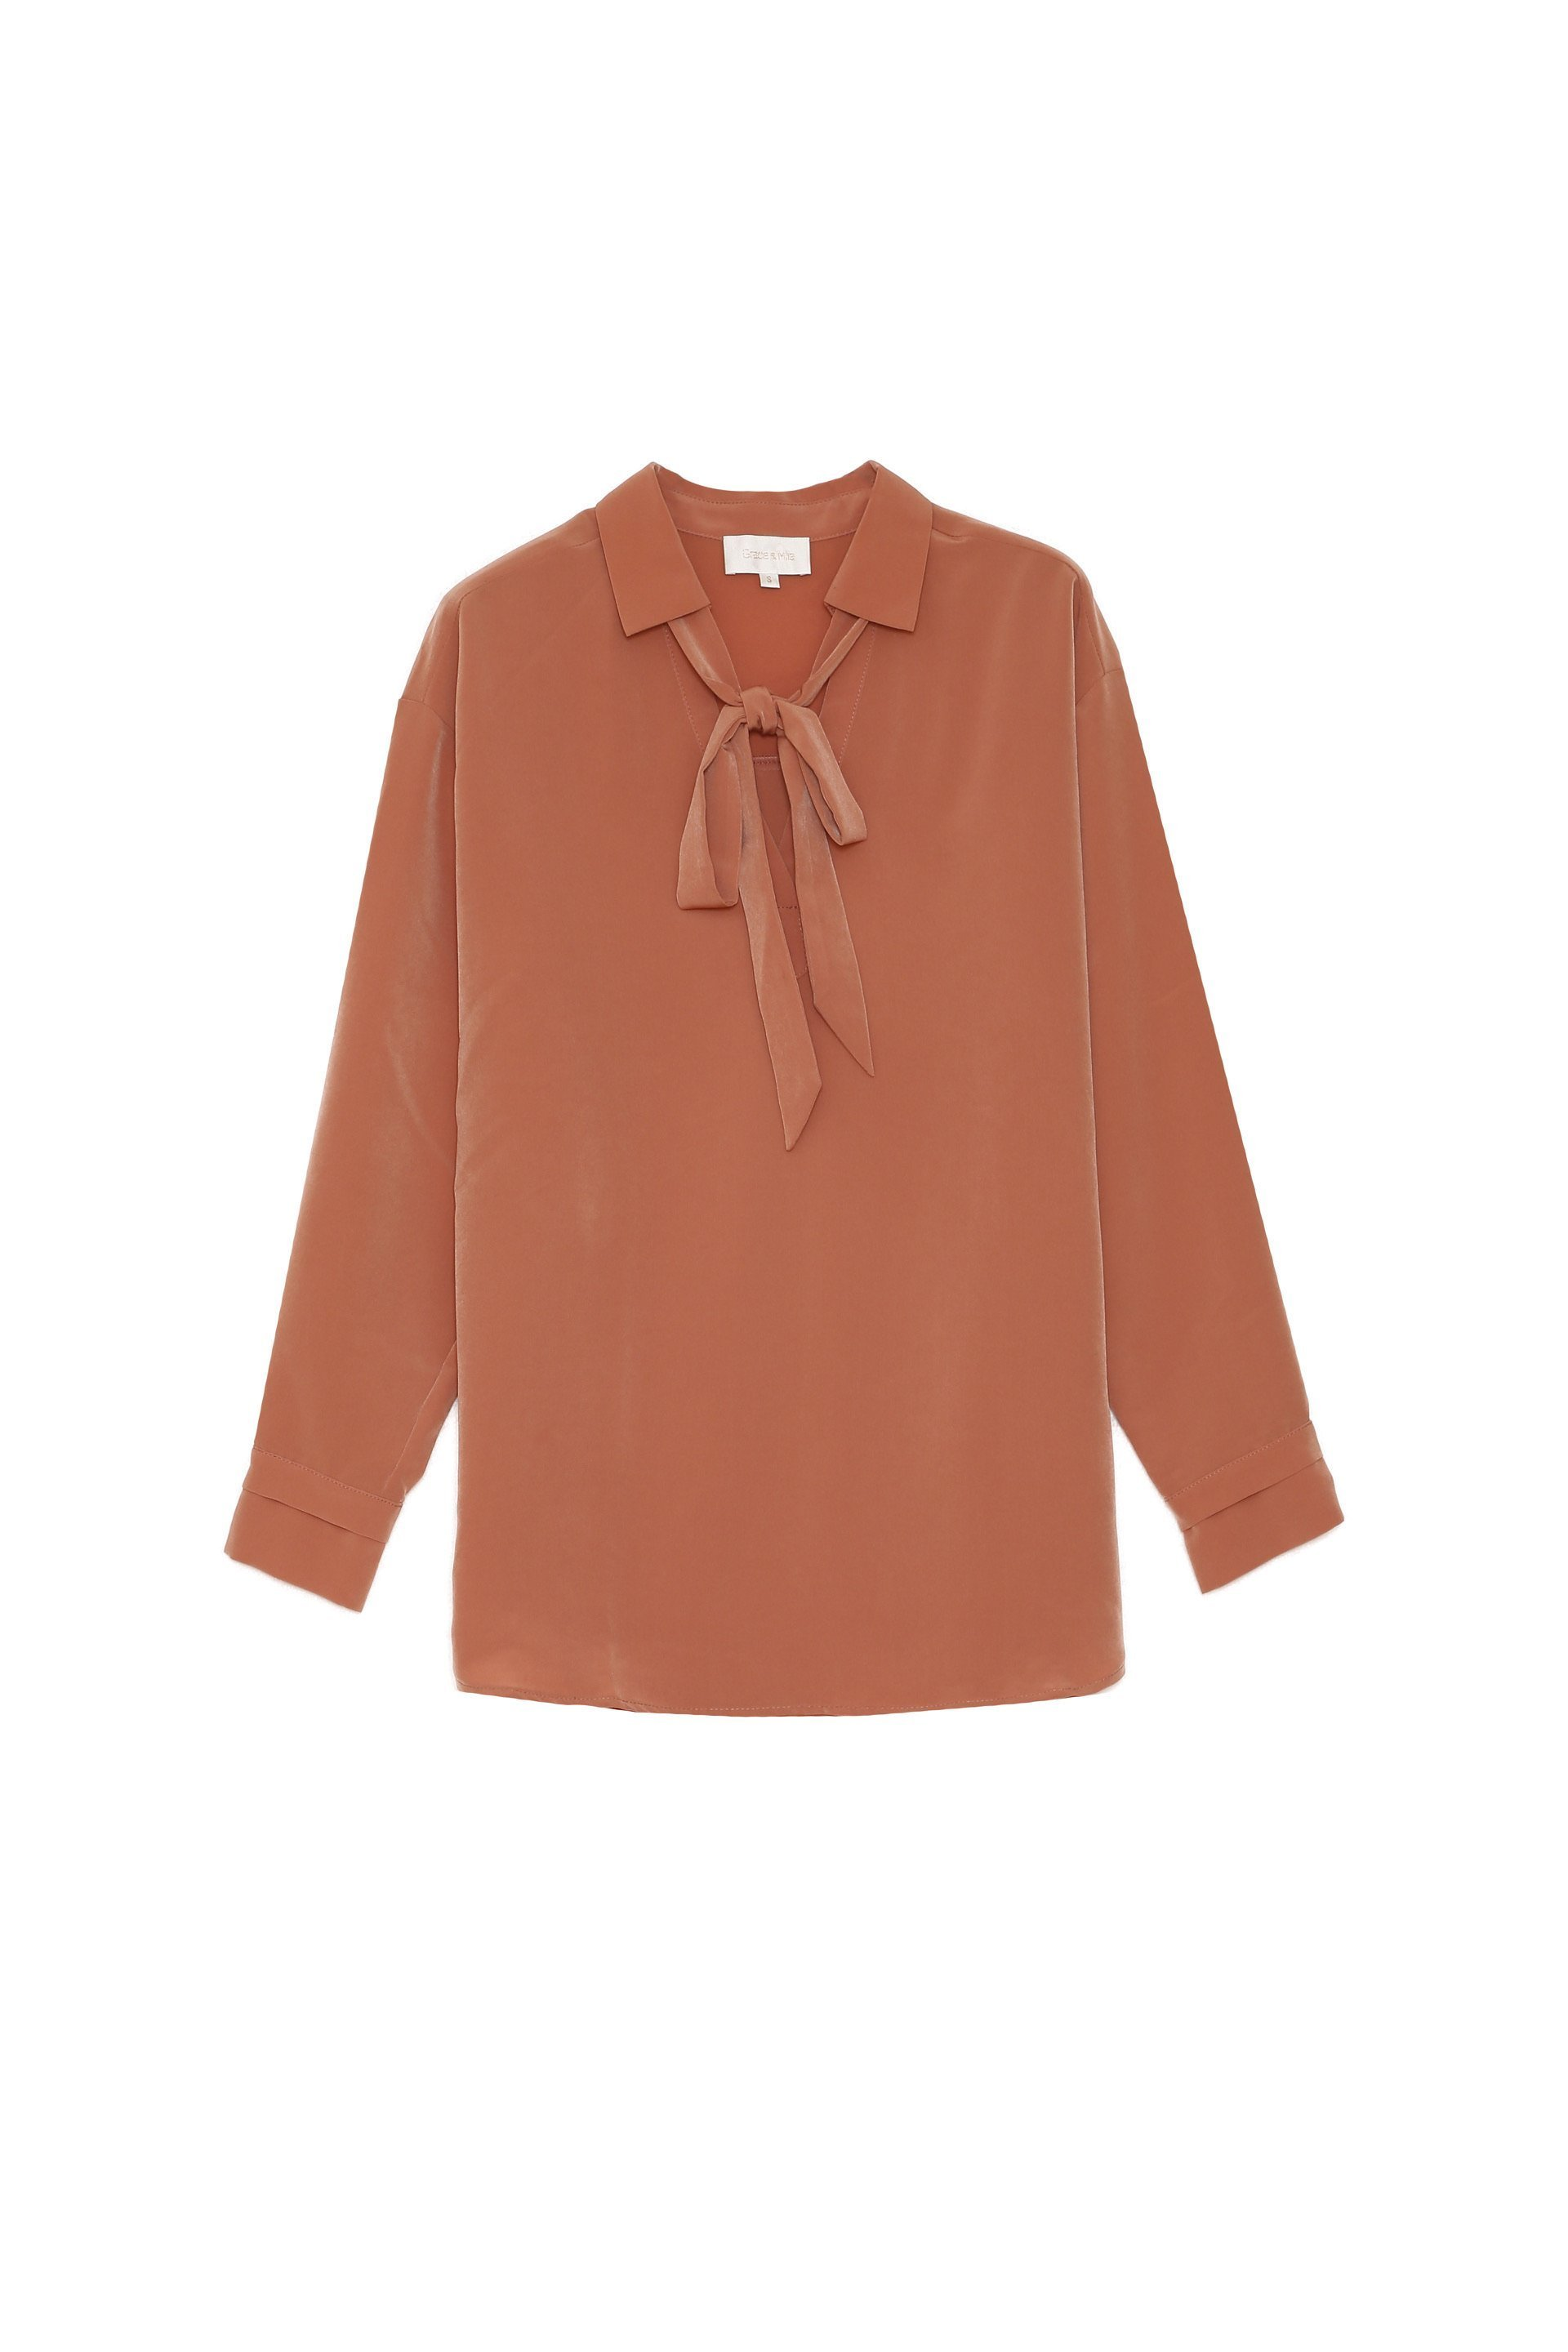 GRACE & MILA LONG-SLEEVED ROSE BLOUSE WITH A LAVALIERE COLLAR Image